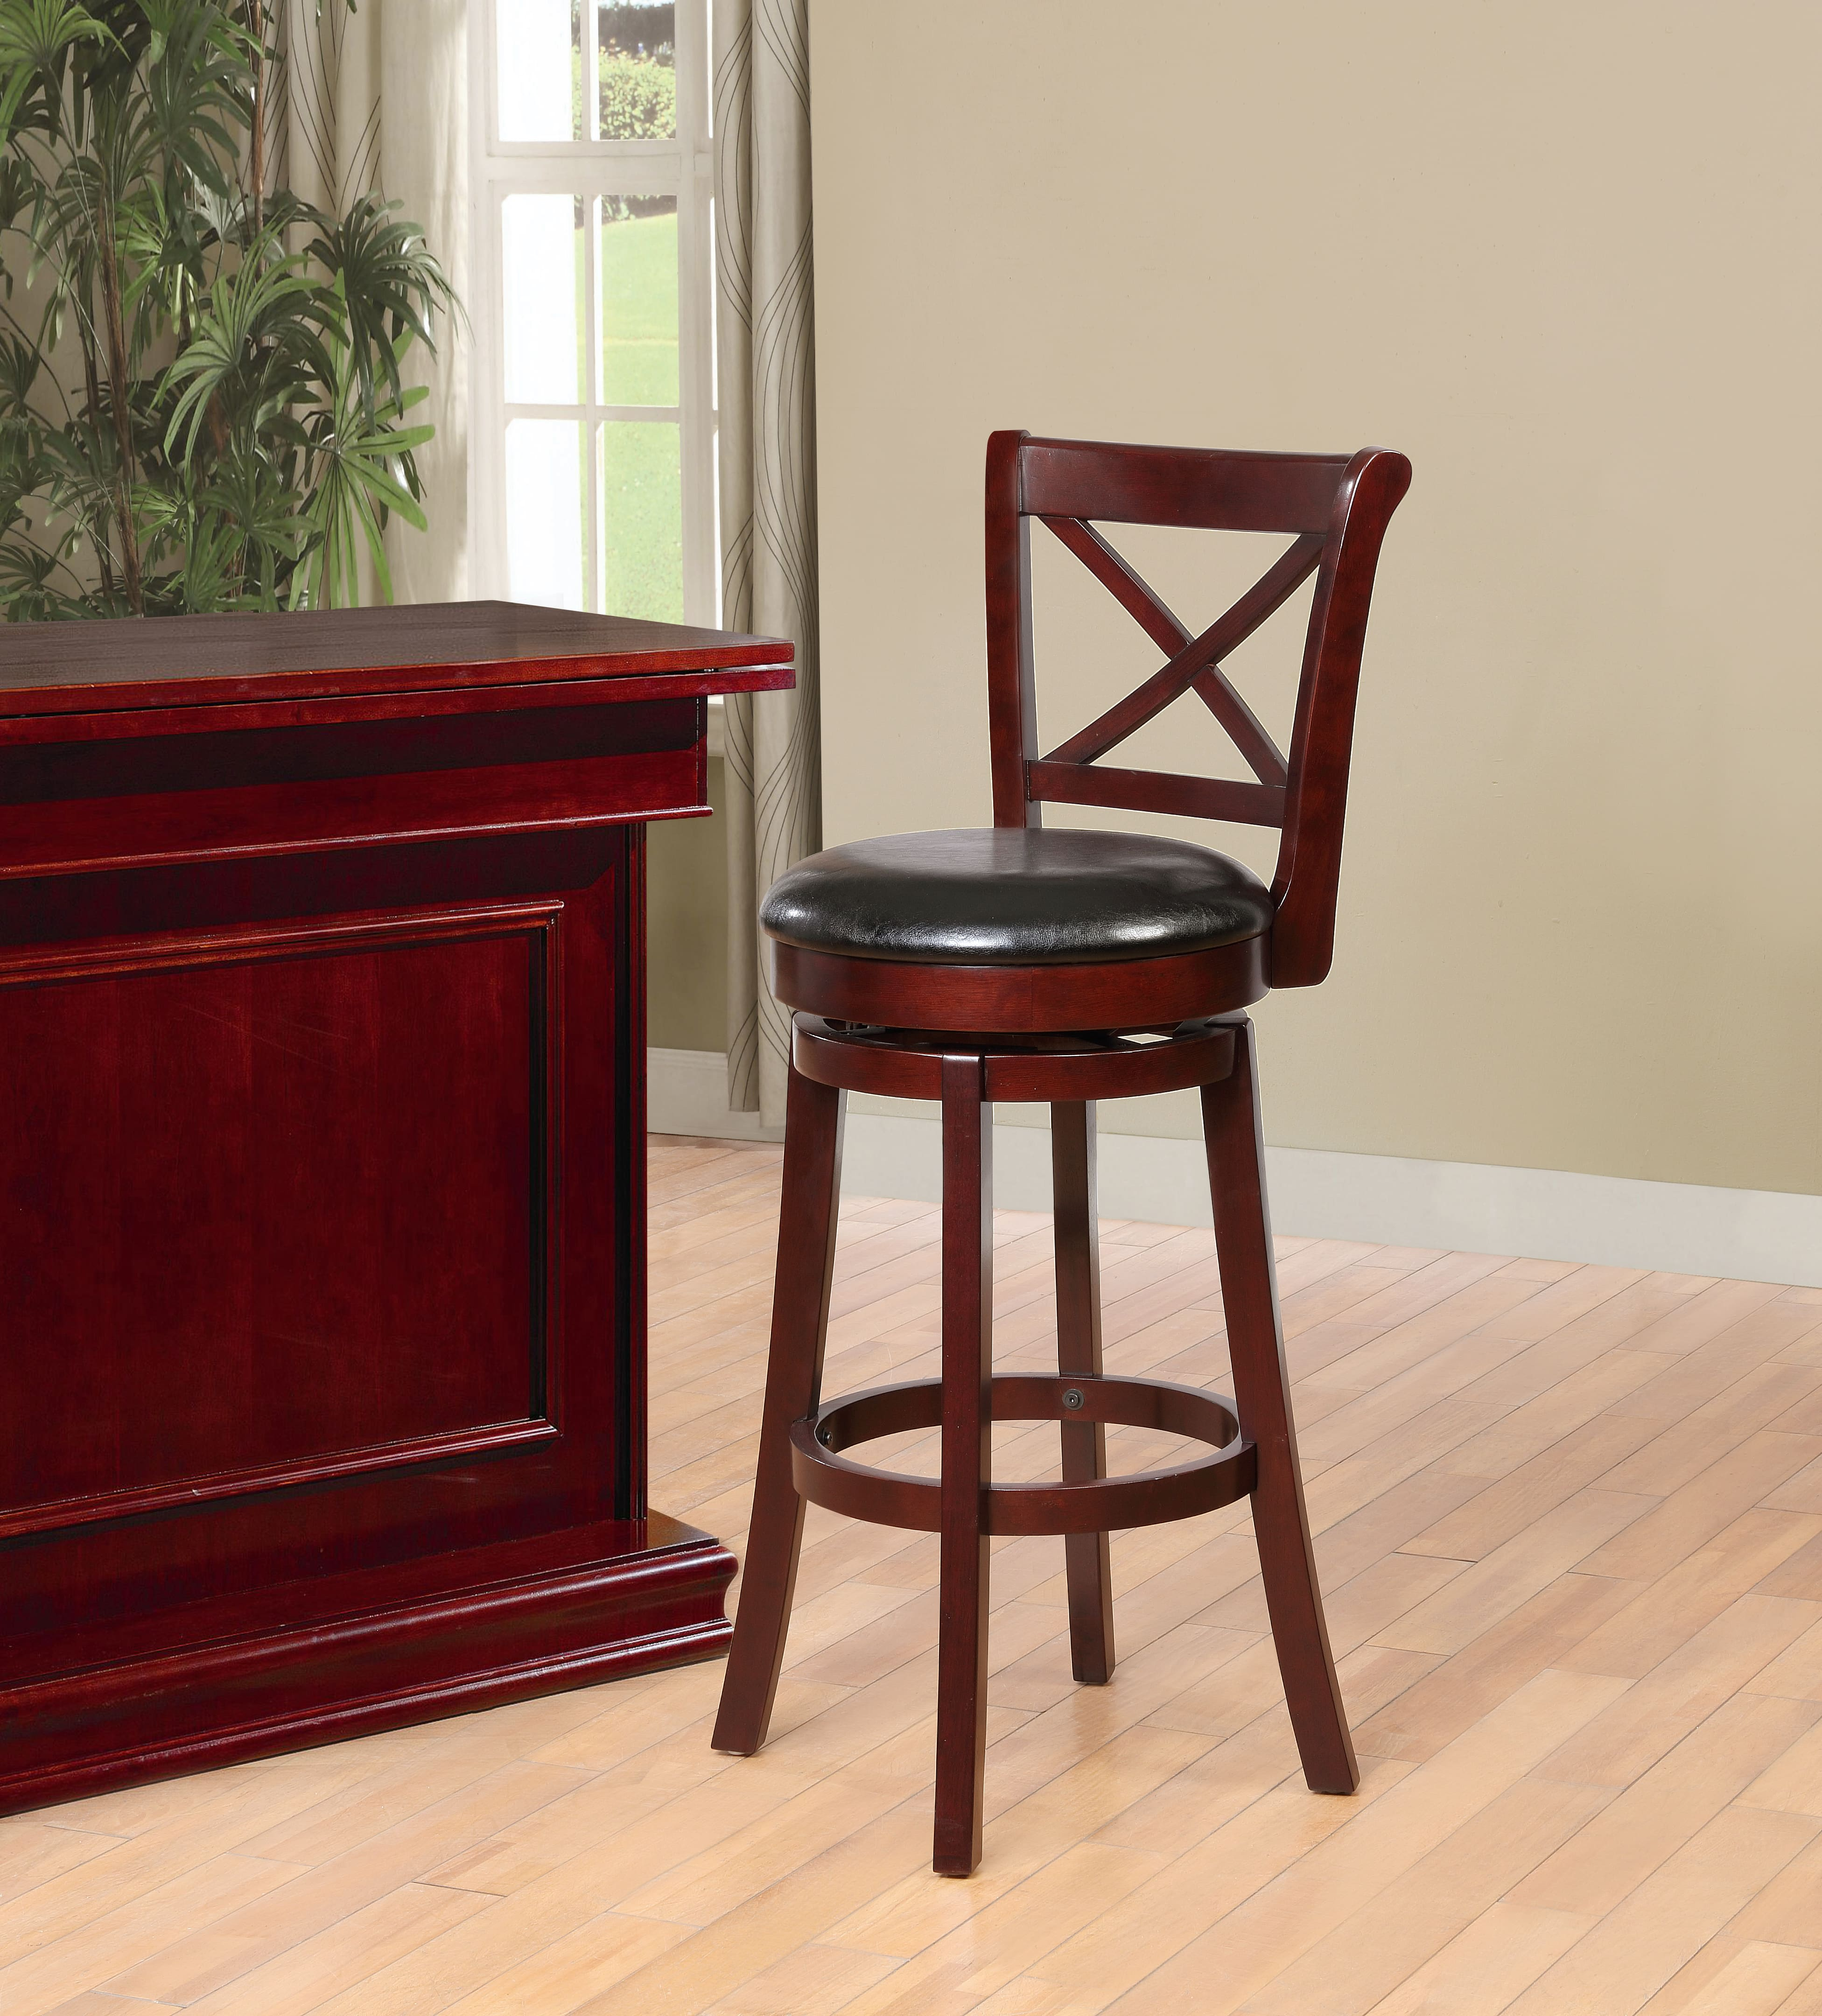 Essential Home Miller Barstool for $25: Instore Only - Highly YMMV